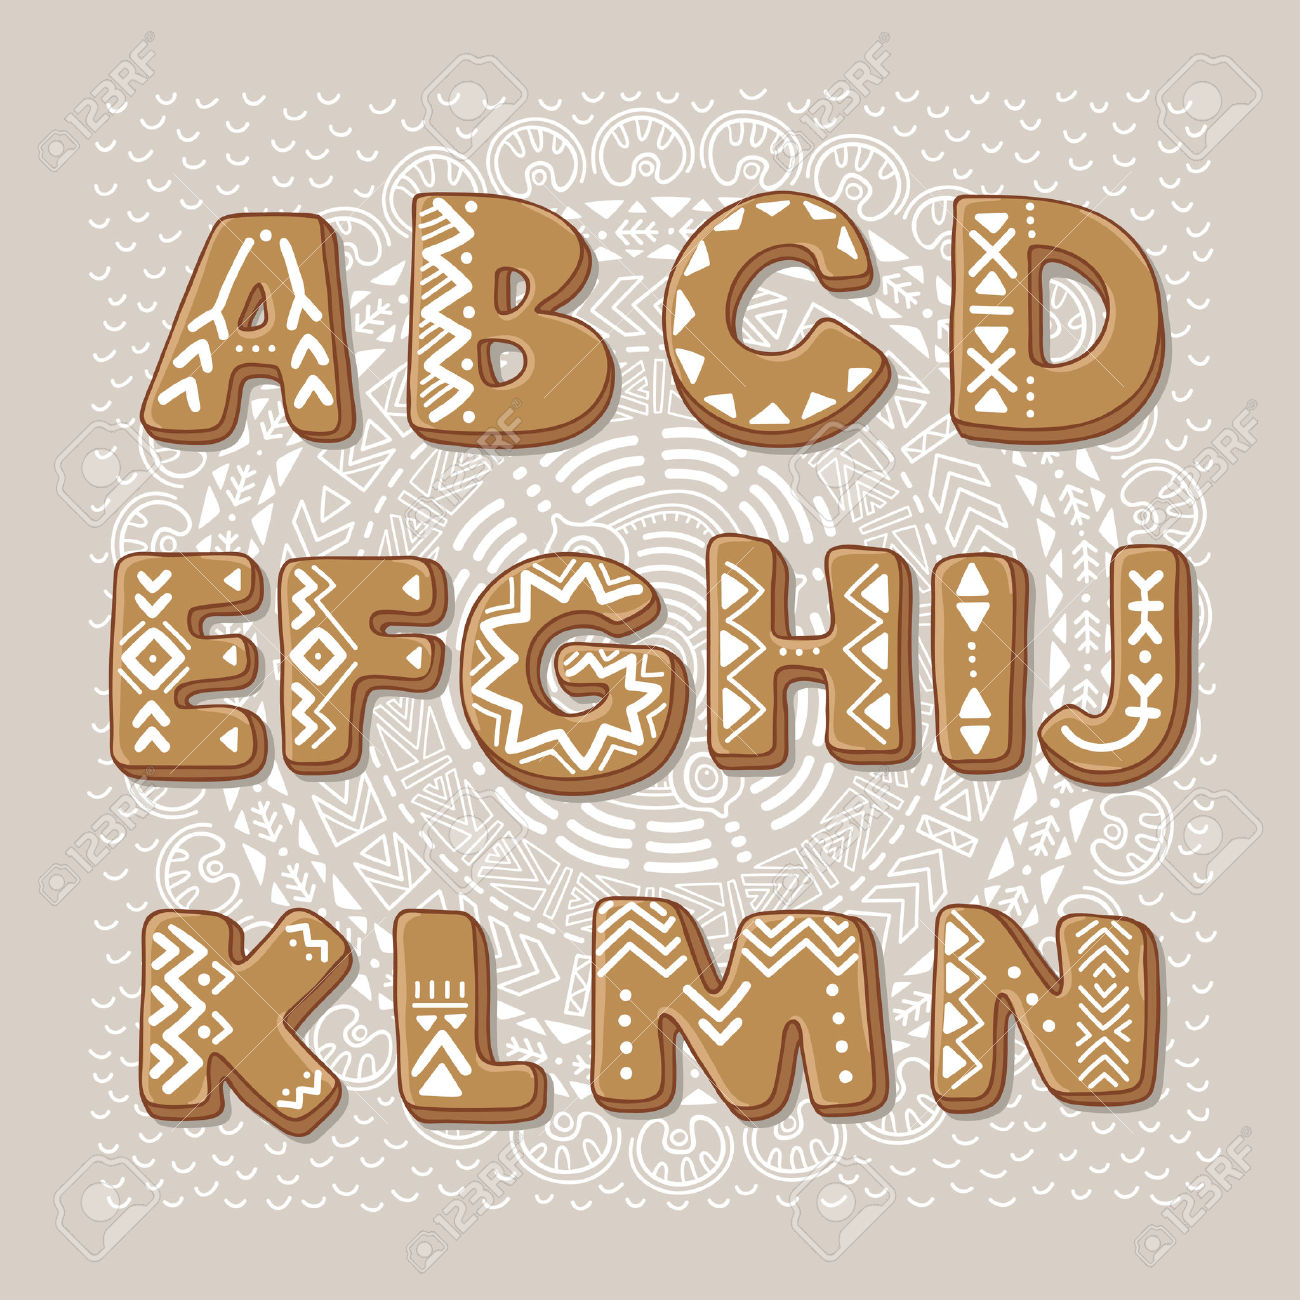 Gingerbread alphabet letter g clipart graphic free library Free Premium Cliparts - ClipartFest graphic free library